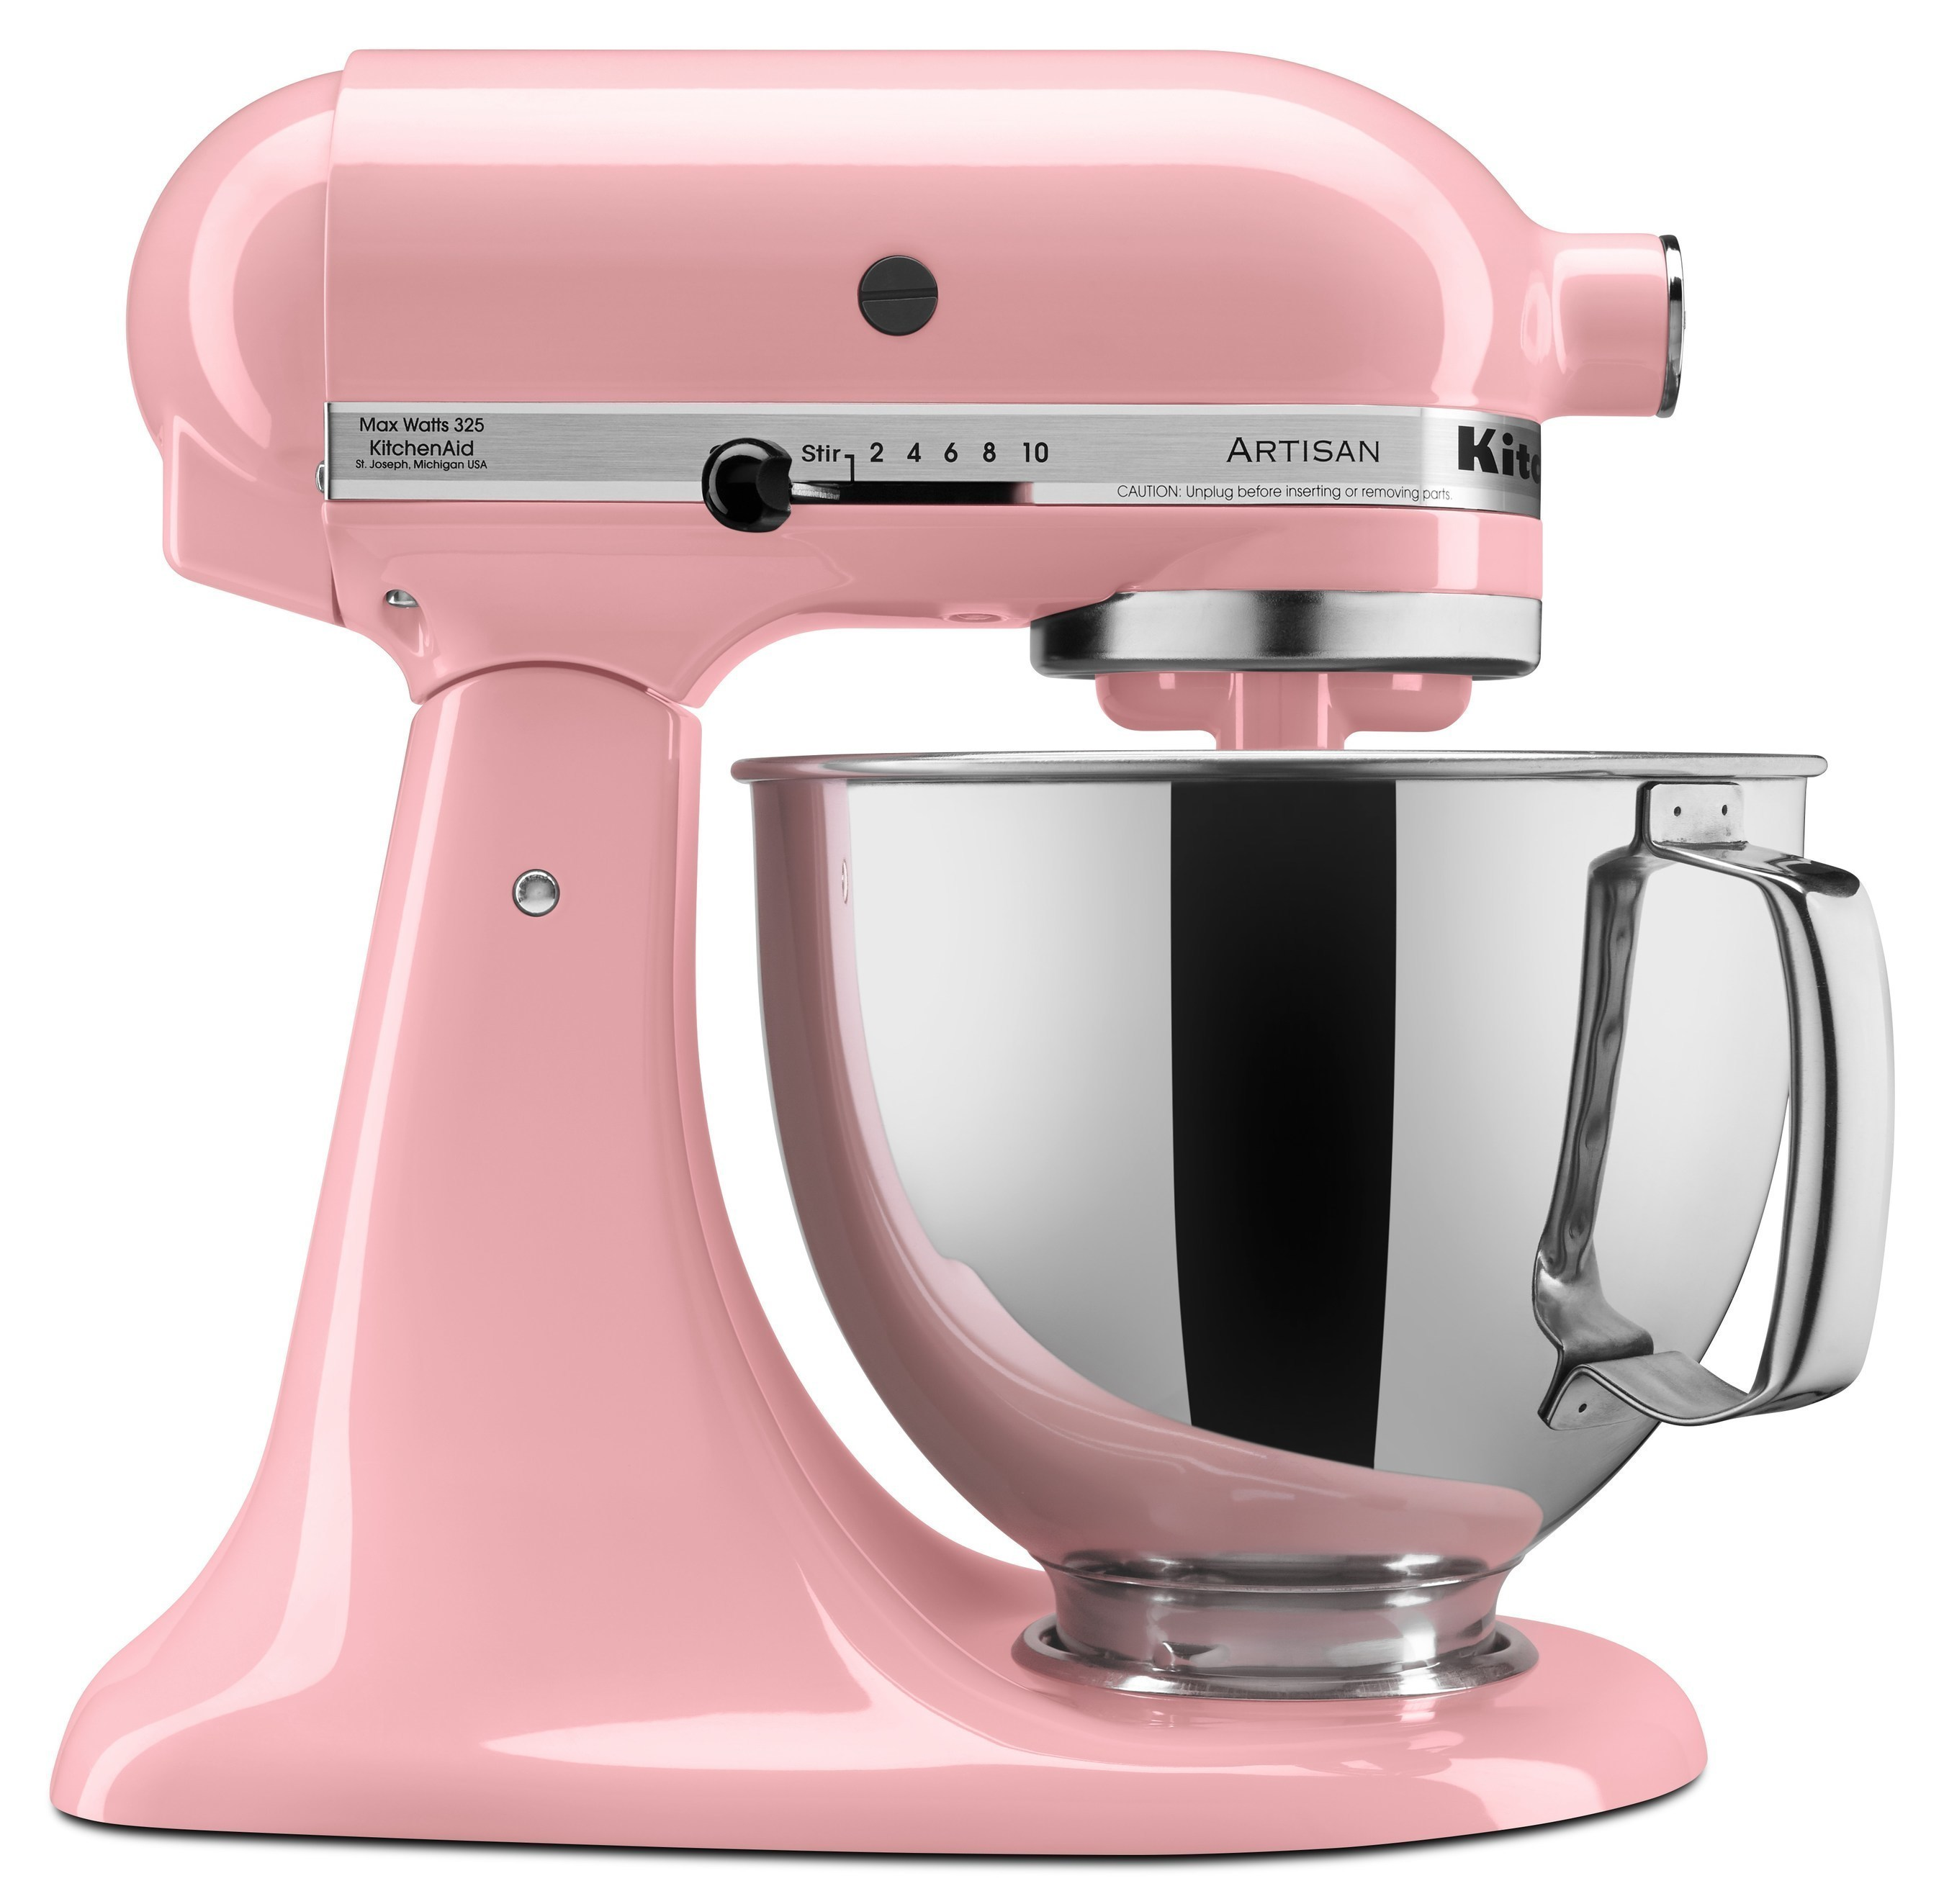 Kitchenaid Stand Mixer In Guava Glaze